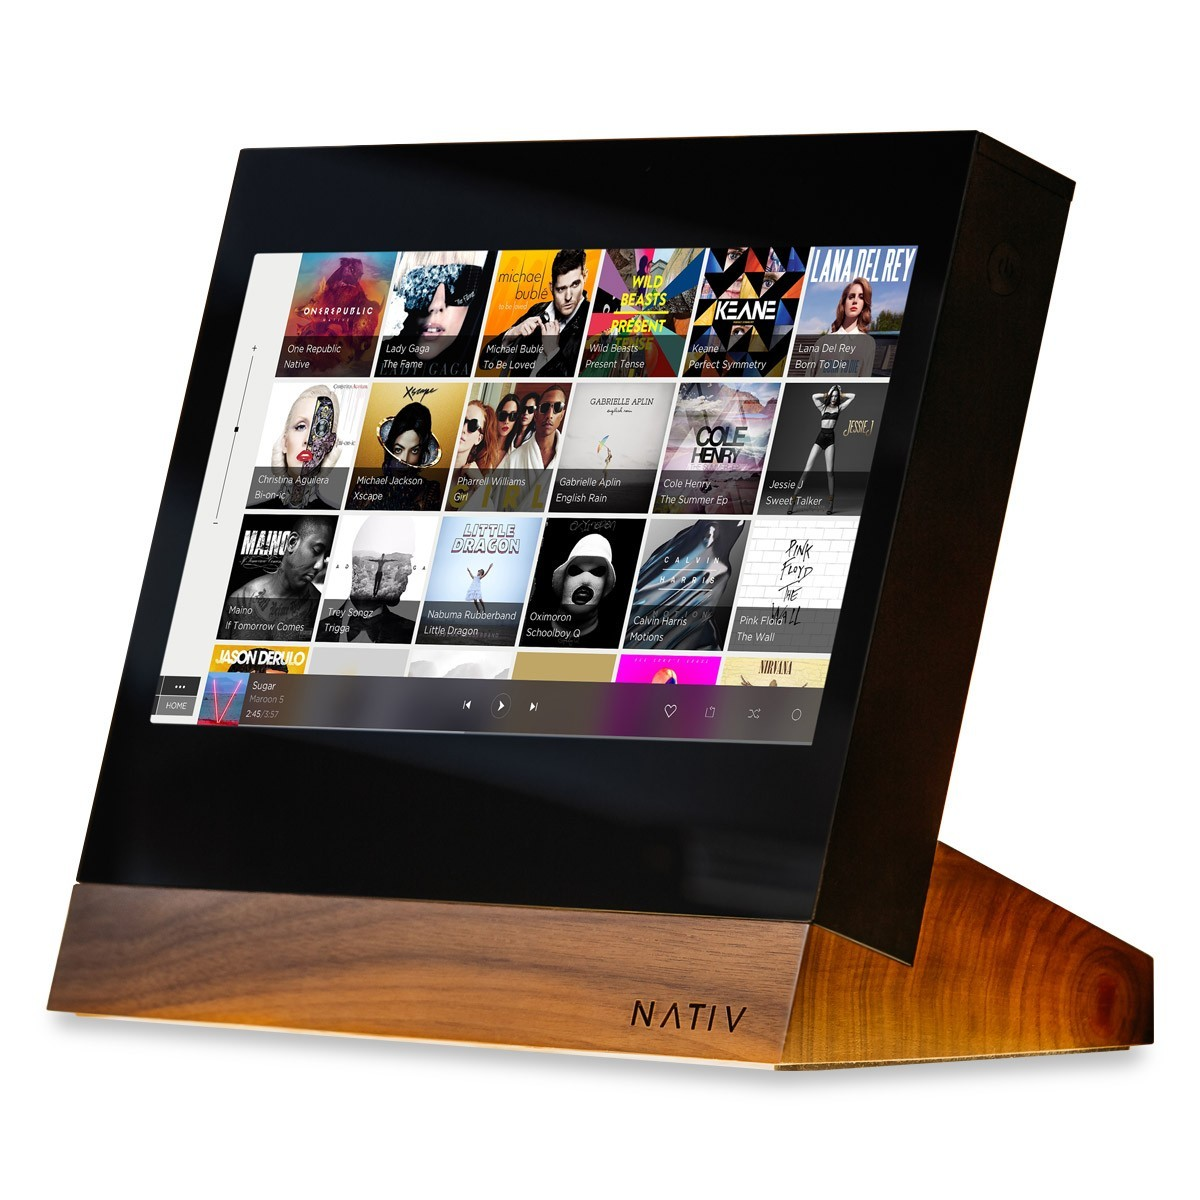 NATIV VITA - Hifi Streamer with Touchscreen DSD256 32bit 384Khz Maple Stand